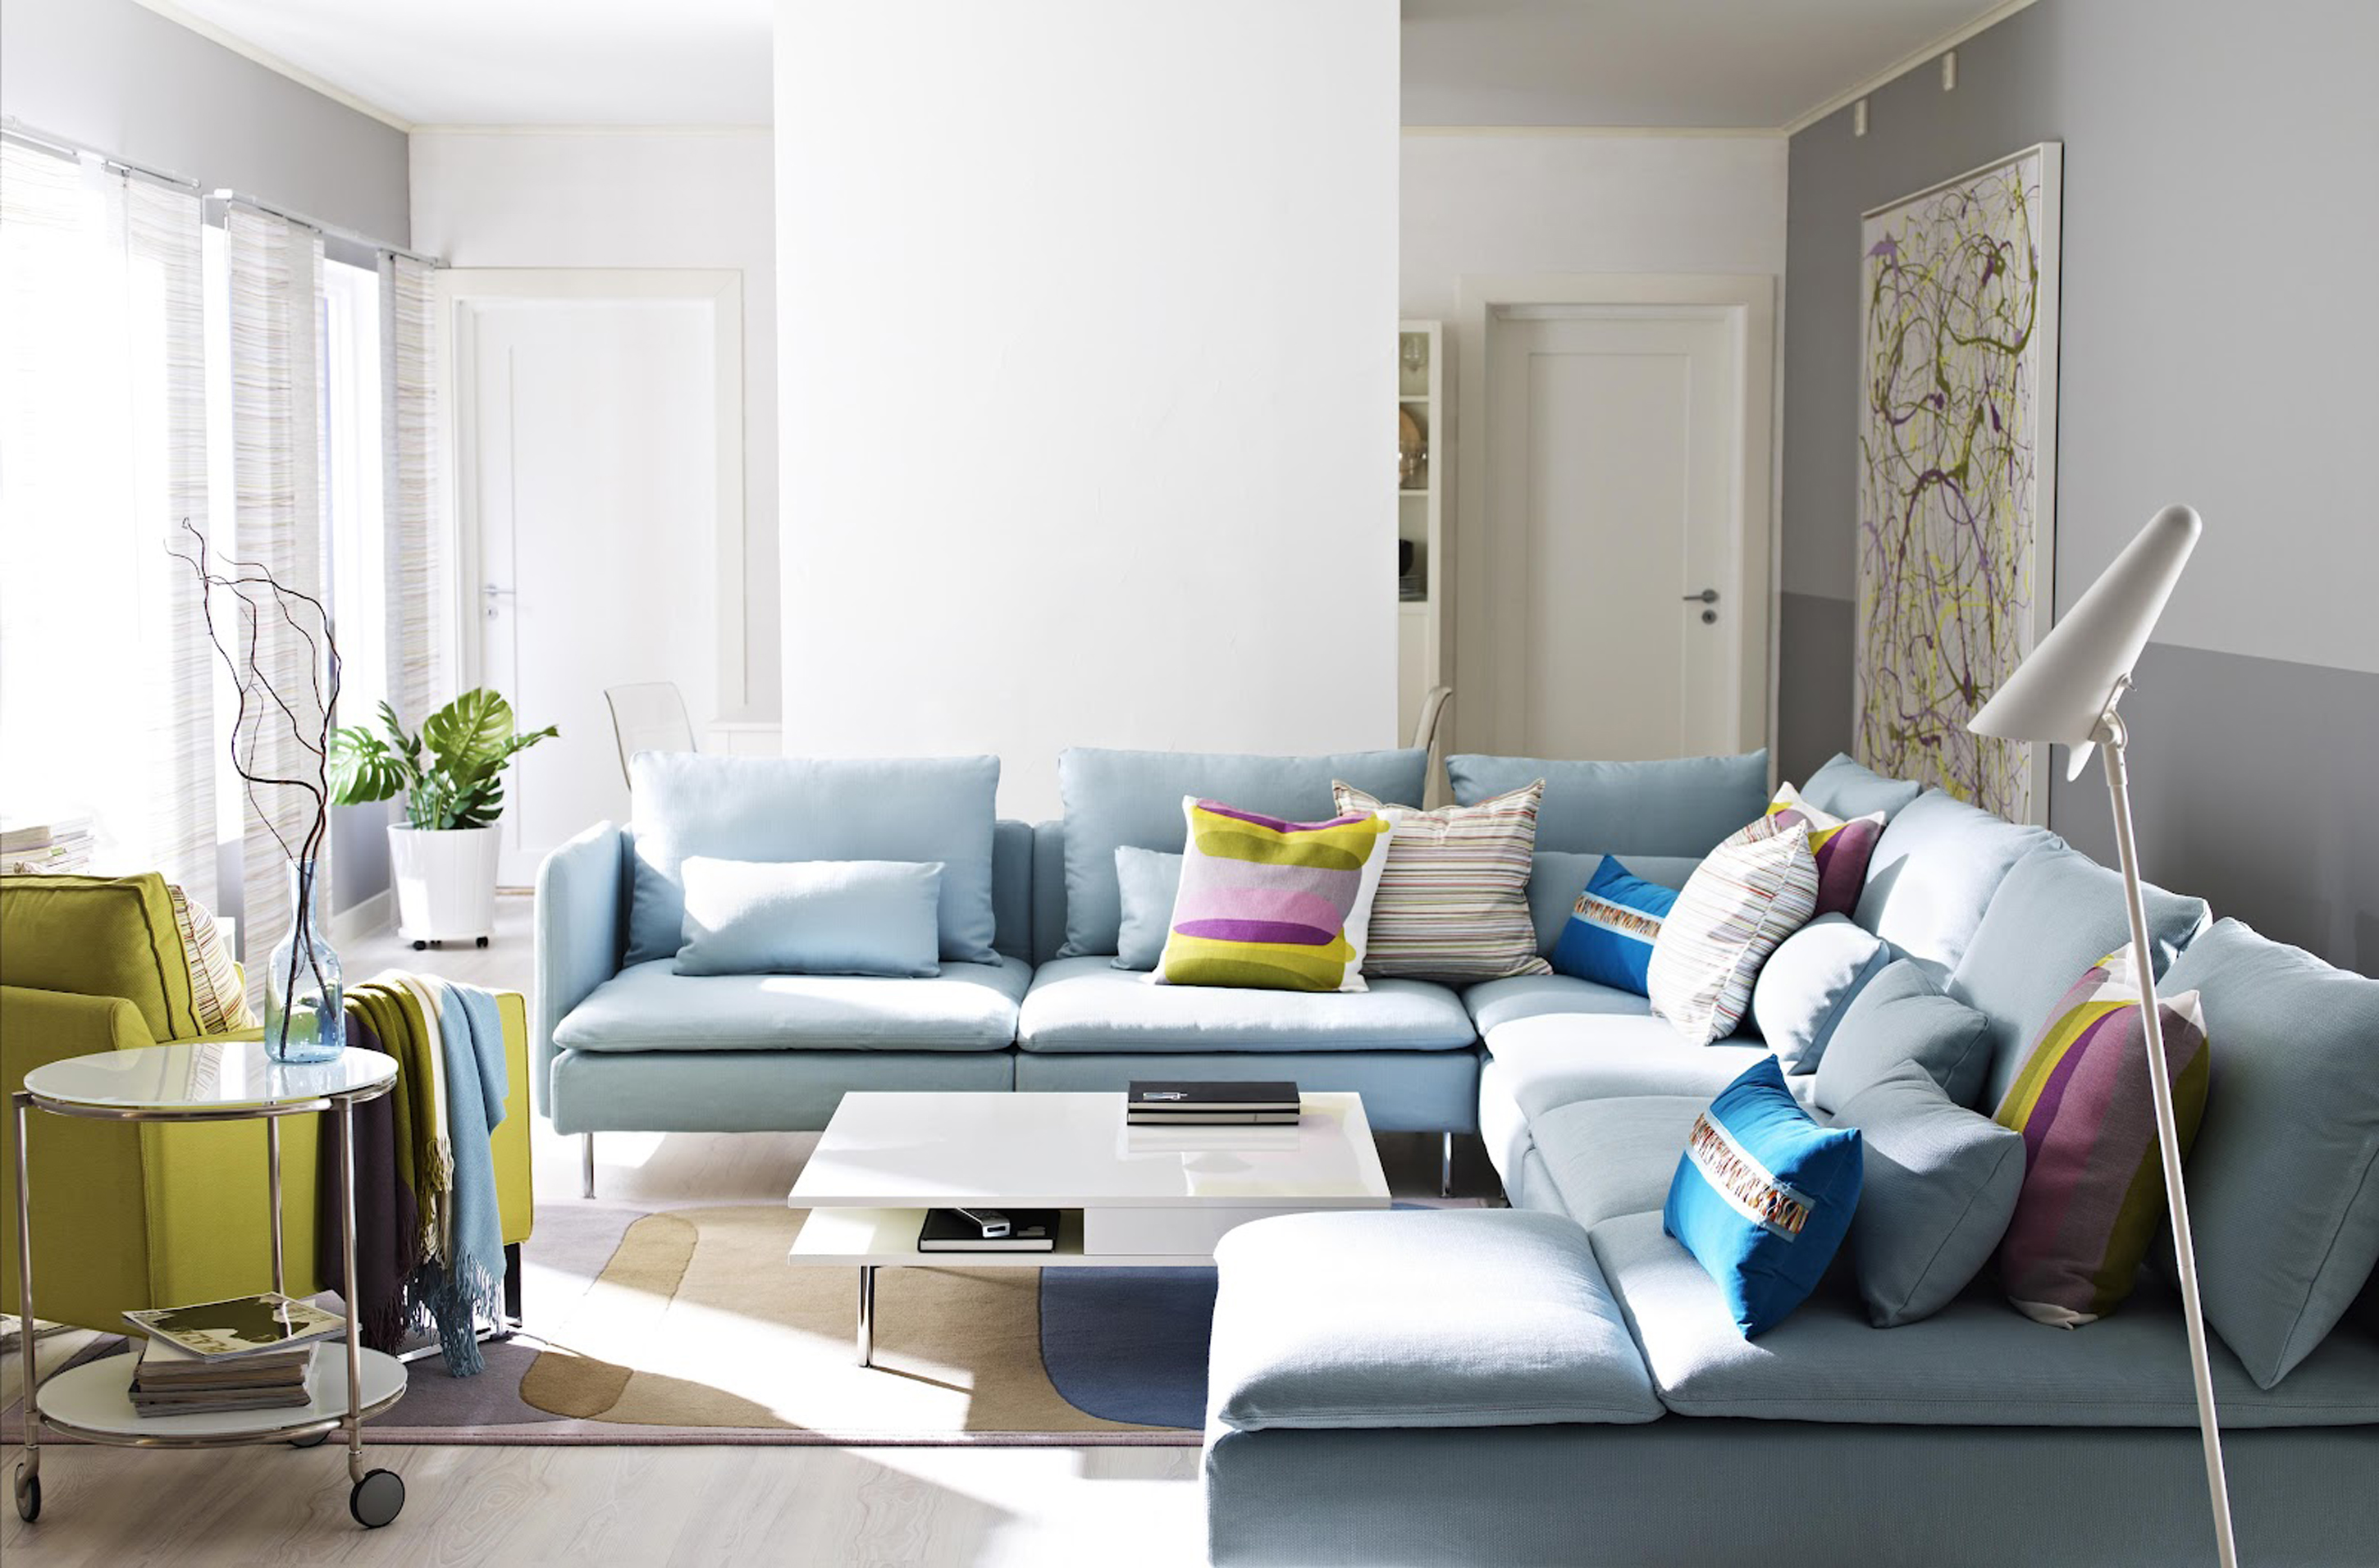 attractive-ikea-interior-design-idea-for-living-room-with-light-blue-sofa-appealing-throw-pillows-and_cushions-in-interior-design-lounge-room_dining-room_dining-room-table-and-chairs-paint-colors-glas